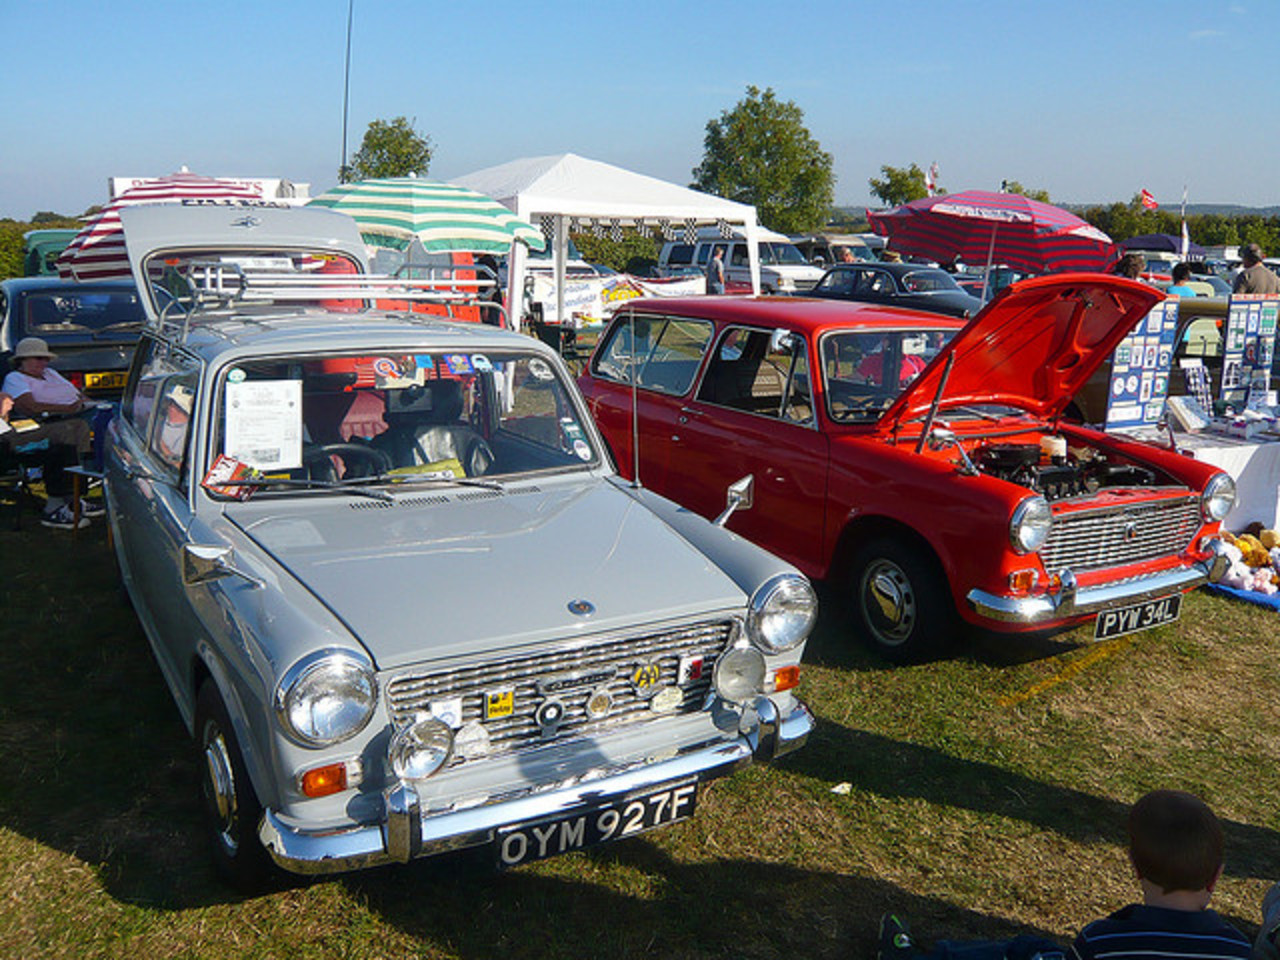 1967 Austin 1100 Countryman and 1973 Austin 1300 Countryman ADO16 ...